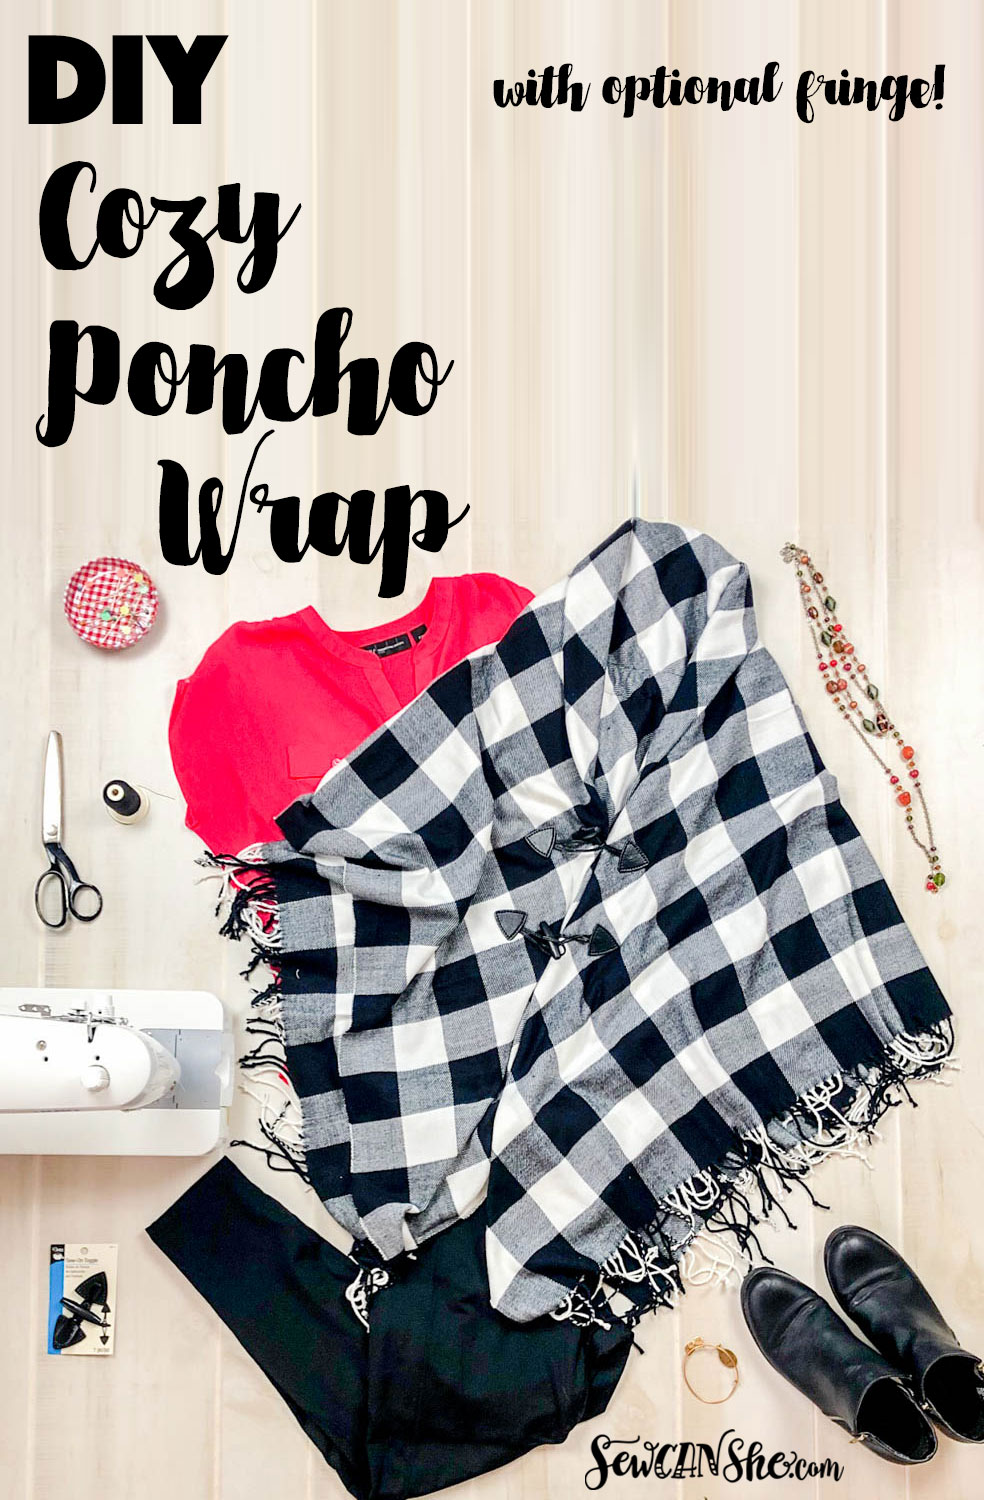 Diy Cozy Poncho Wrap That You Can Sew From Fabric Or A Throw Blanket Sewcanshe Free Sewing Patterns And Tutorials